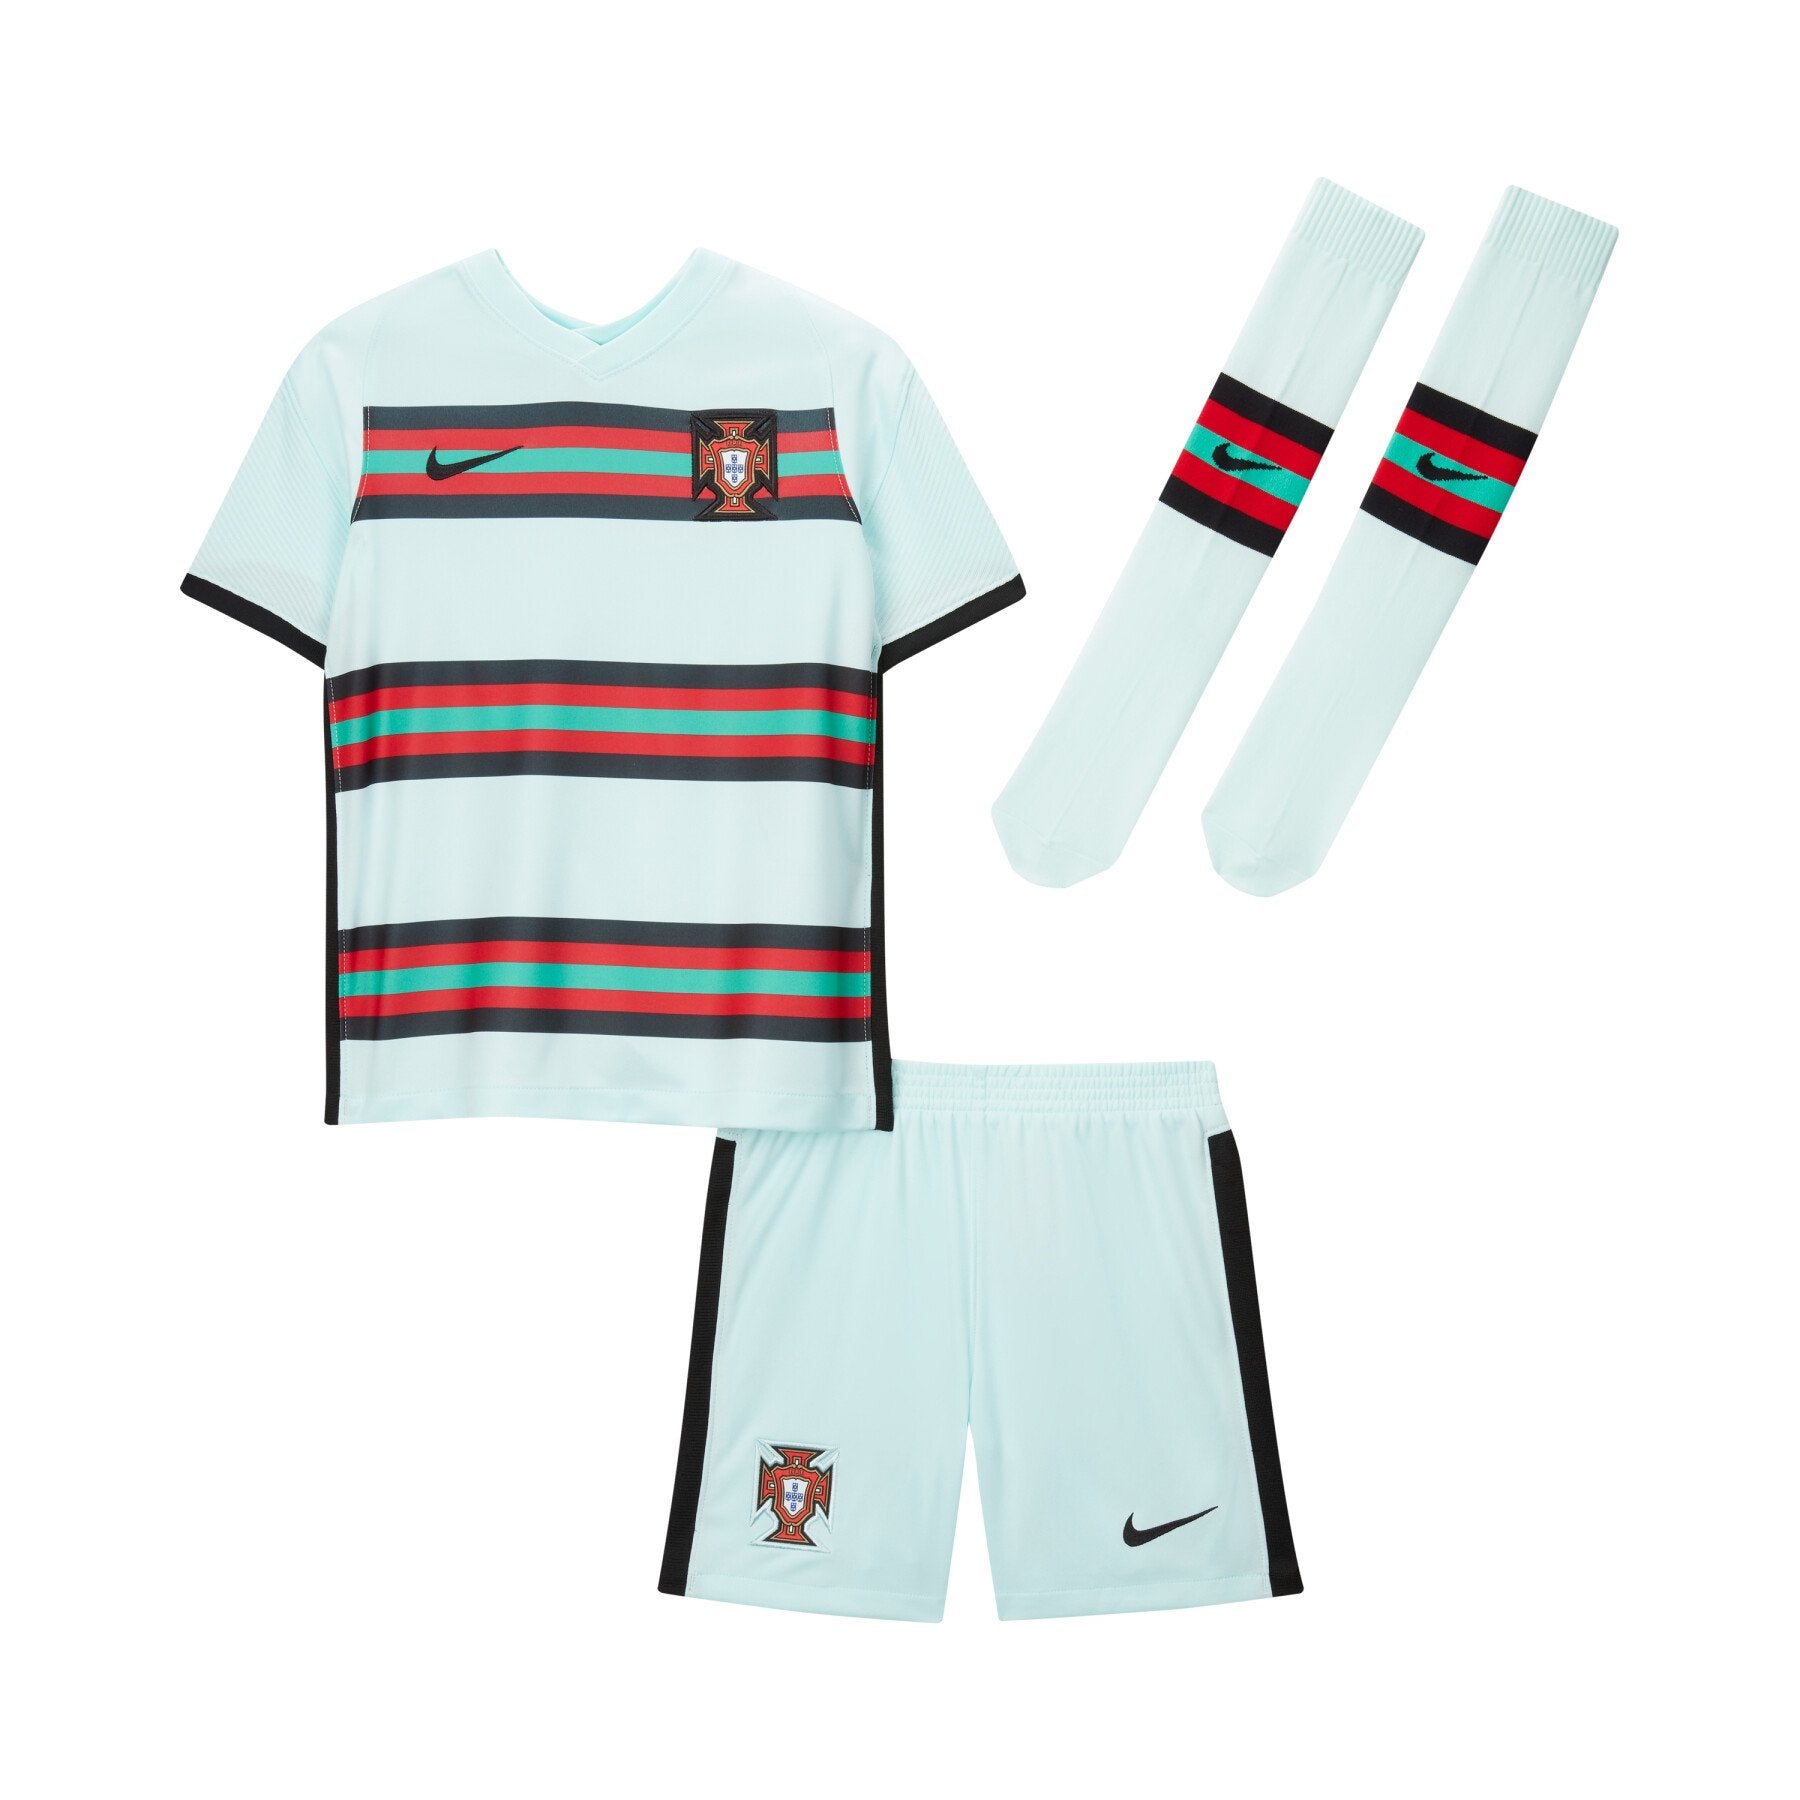 Maillot Kit Portugal Extérieur Vert 2020 2021 - Enfant freeshipping - Foot Online